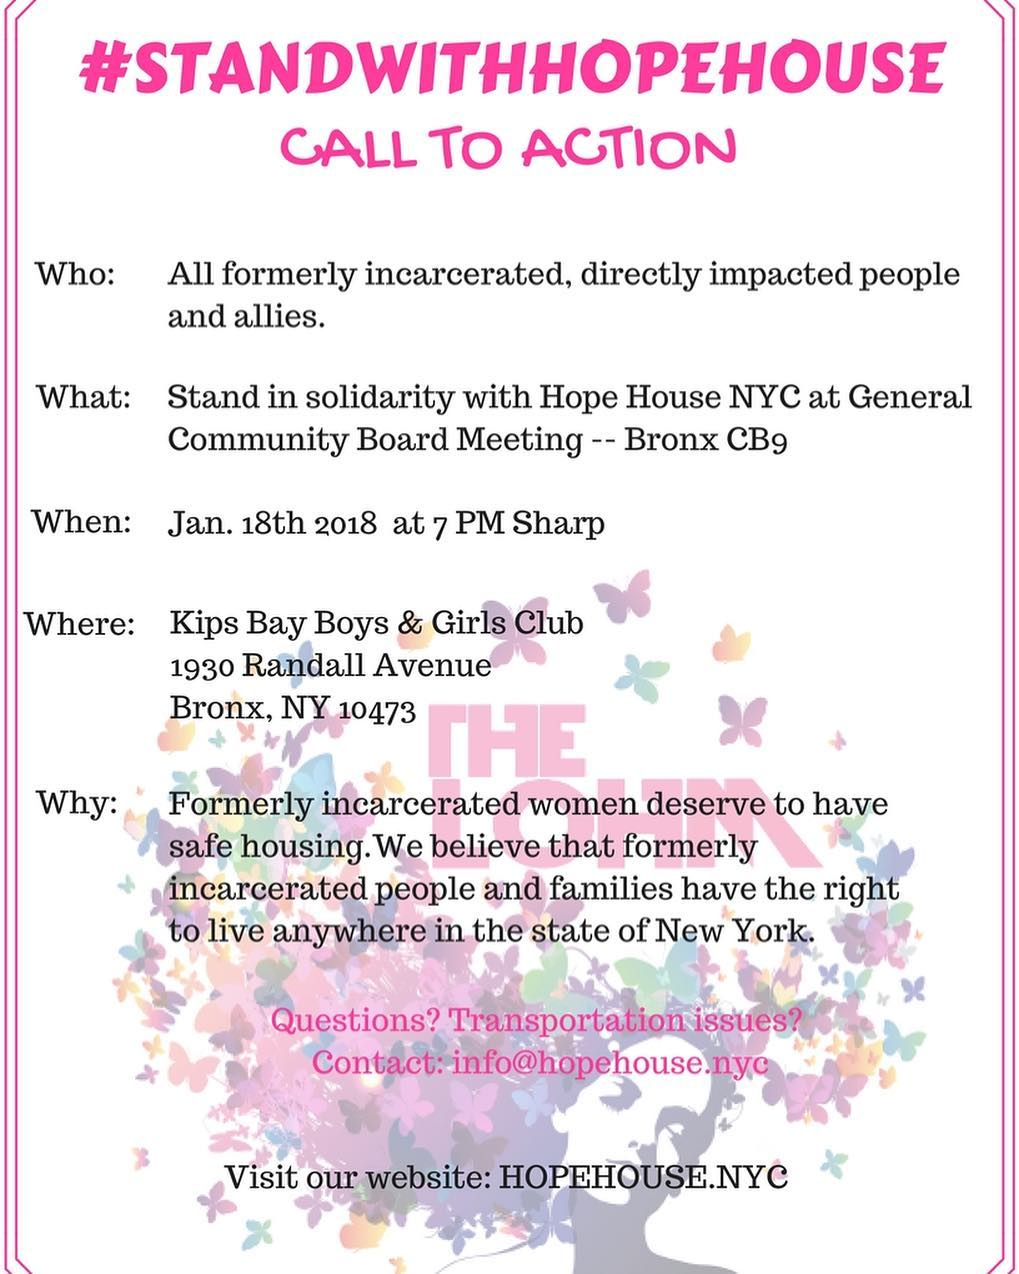 Stand with Hope House on January 18, 2018 at the Bronx Community Board 9 General Meeting!